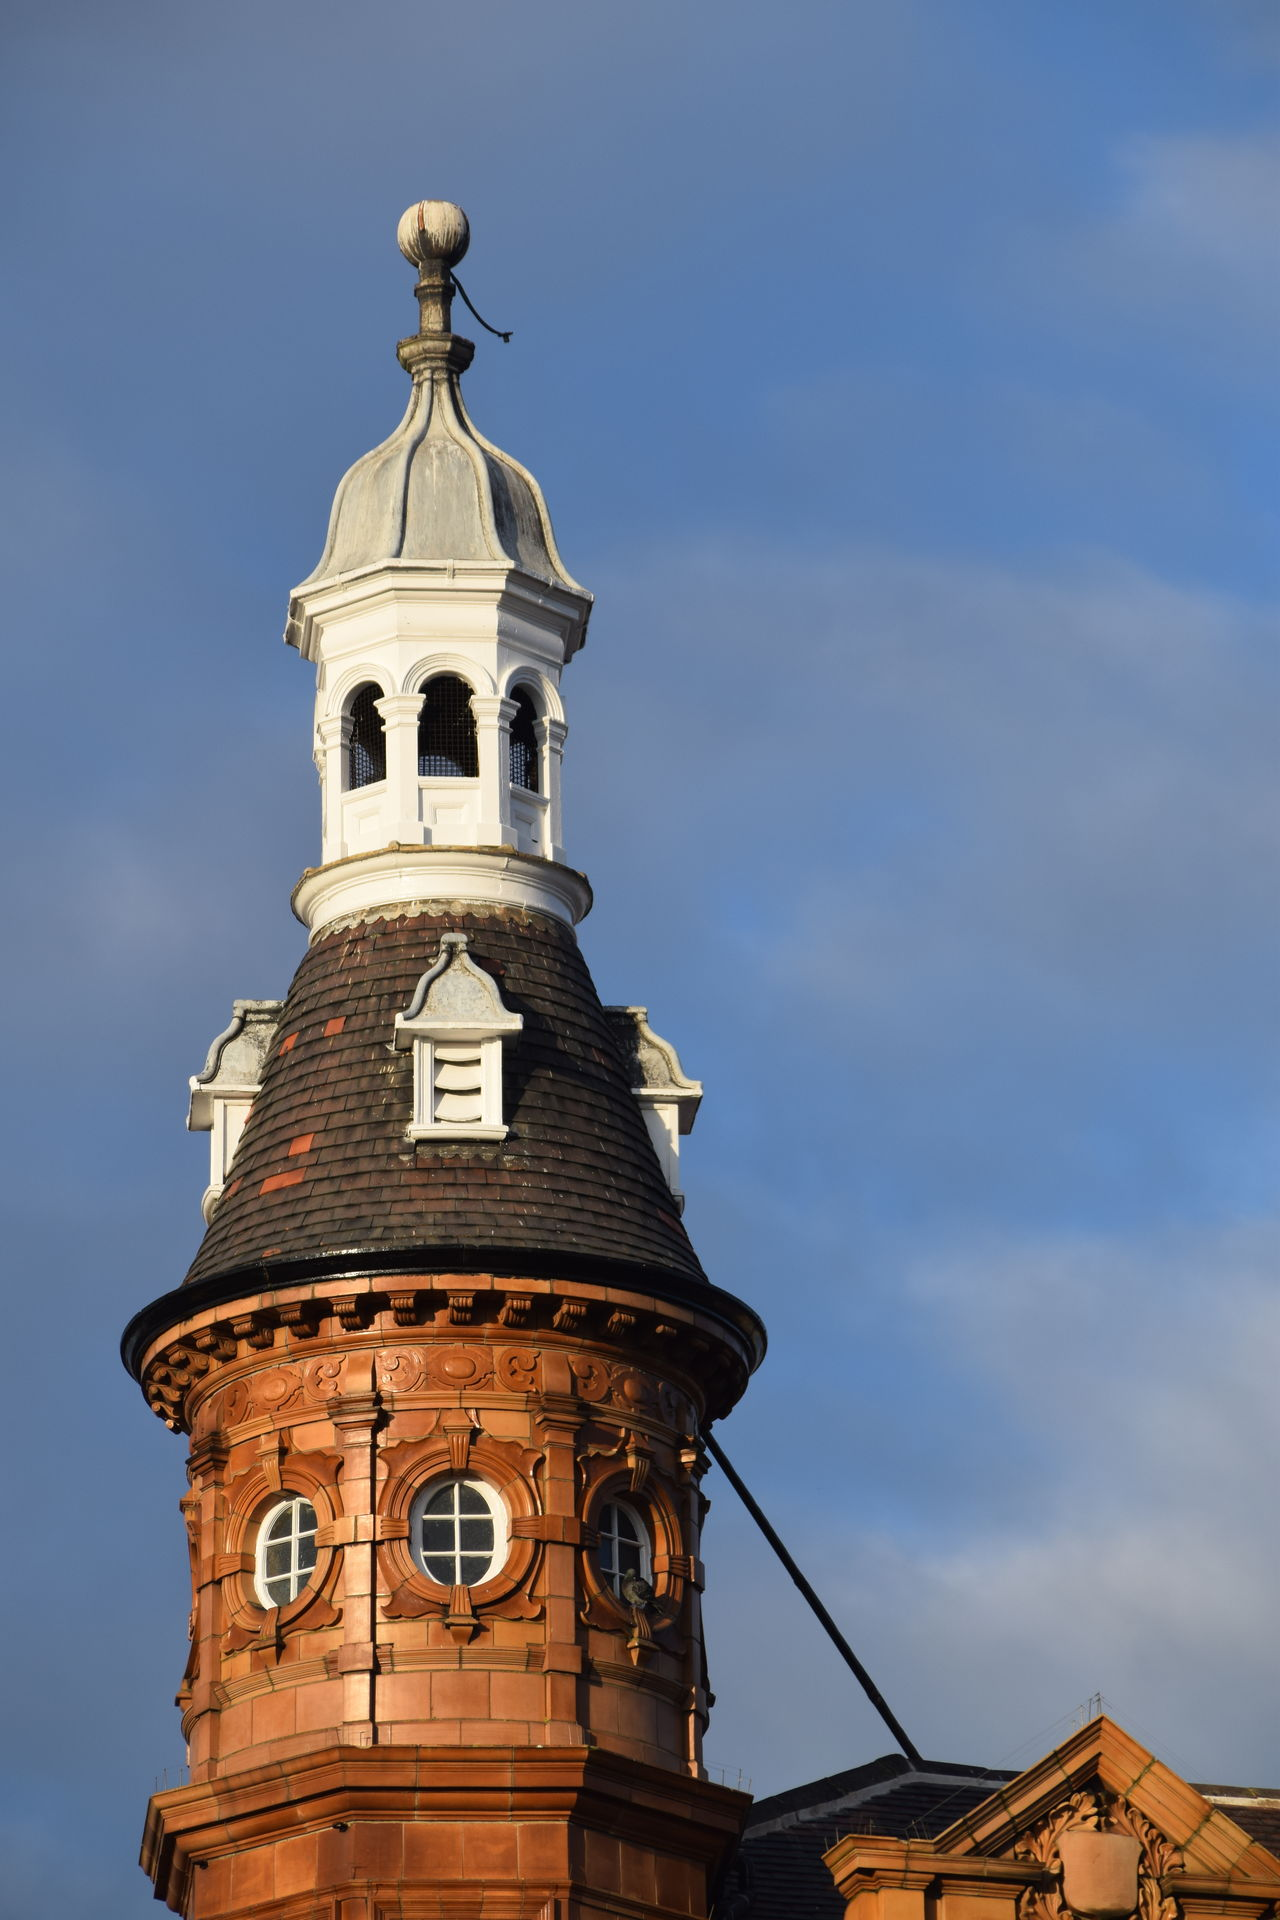 Architecture Bell Building Against Sky City Centre City Landscape Clock Clock Tower Day Hull Hull 2017 Hull City Of Culture 2017 Hull2017 No People Outdoors Sky Time Travel Travel Destinations